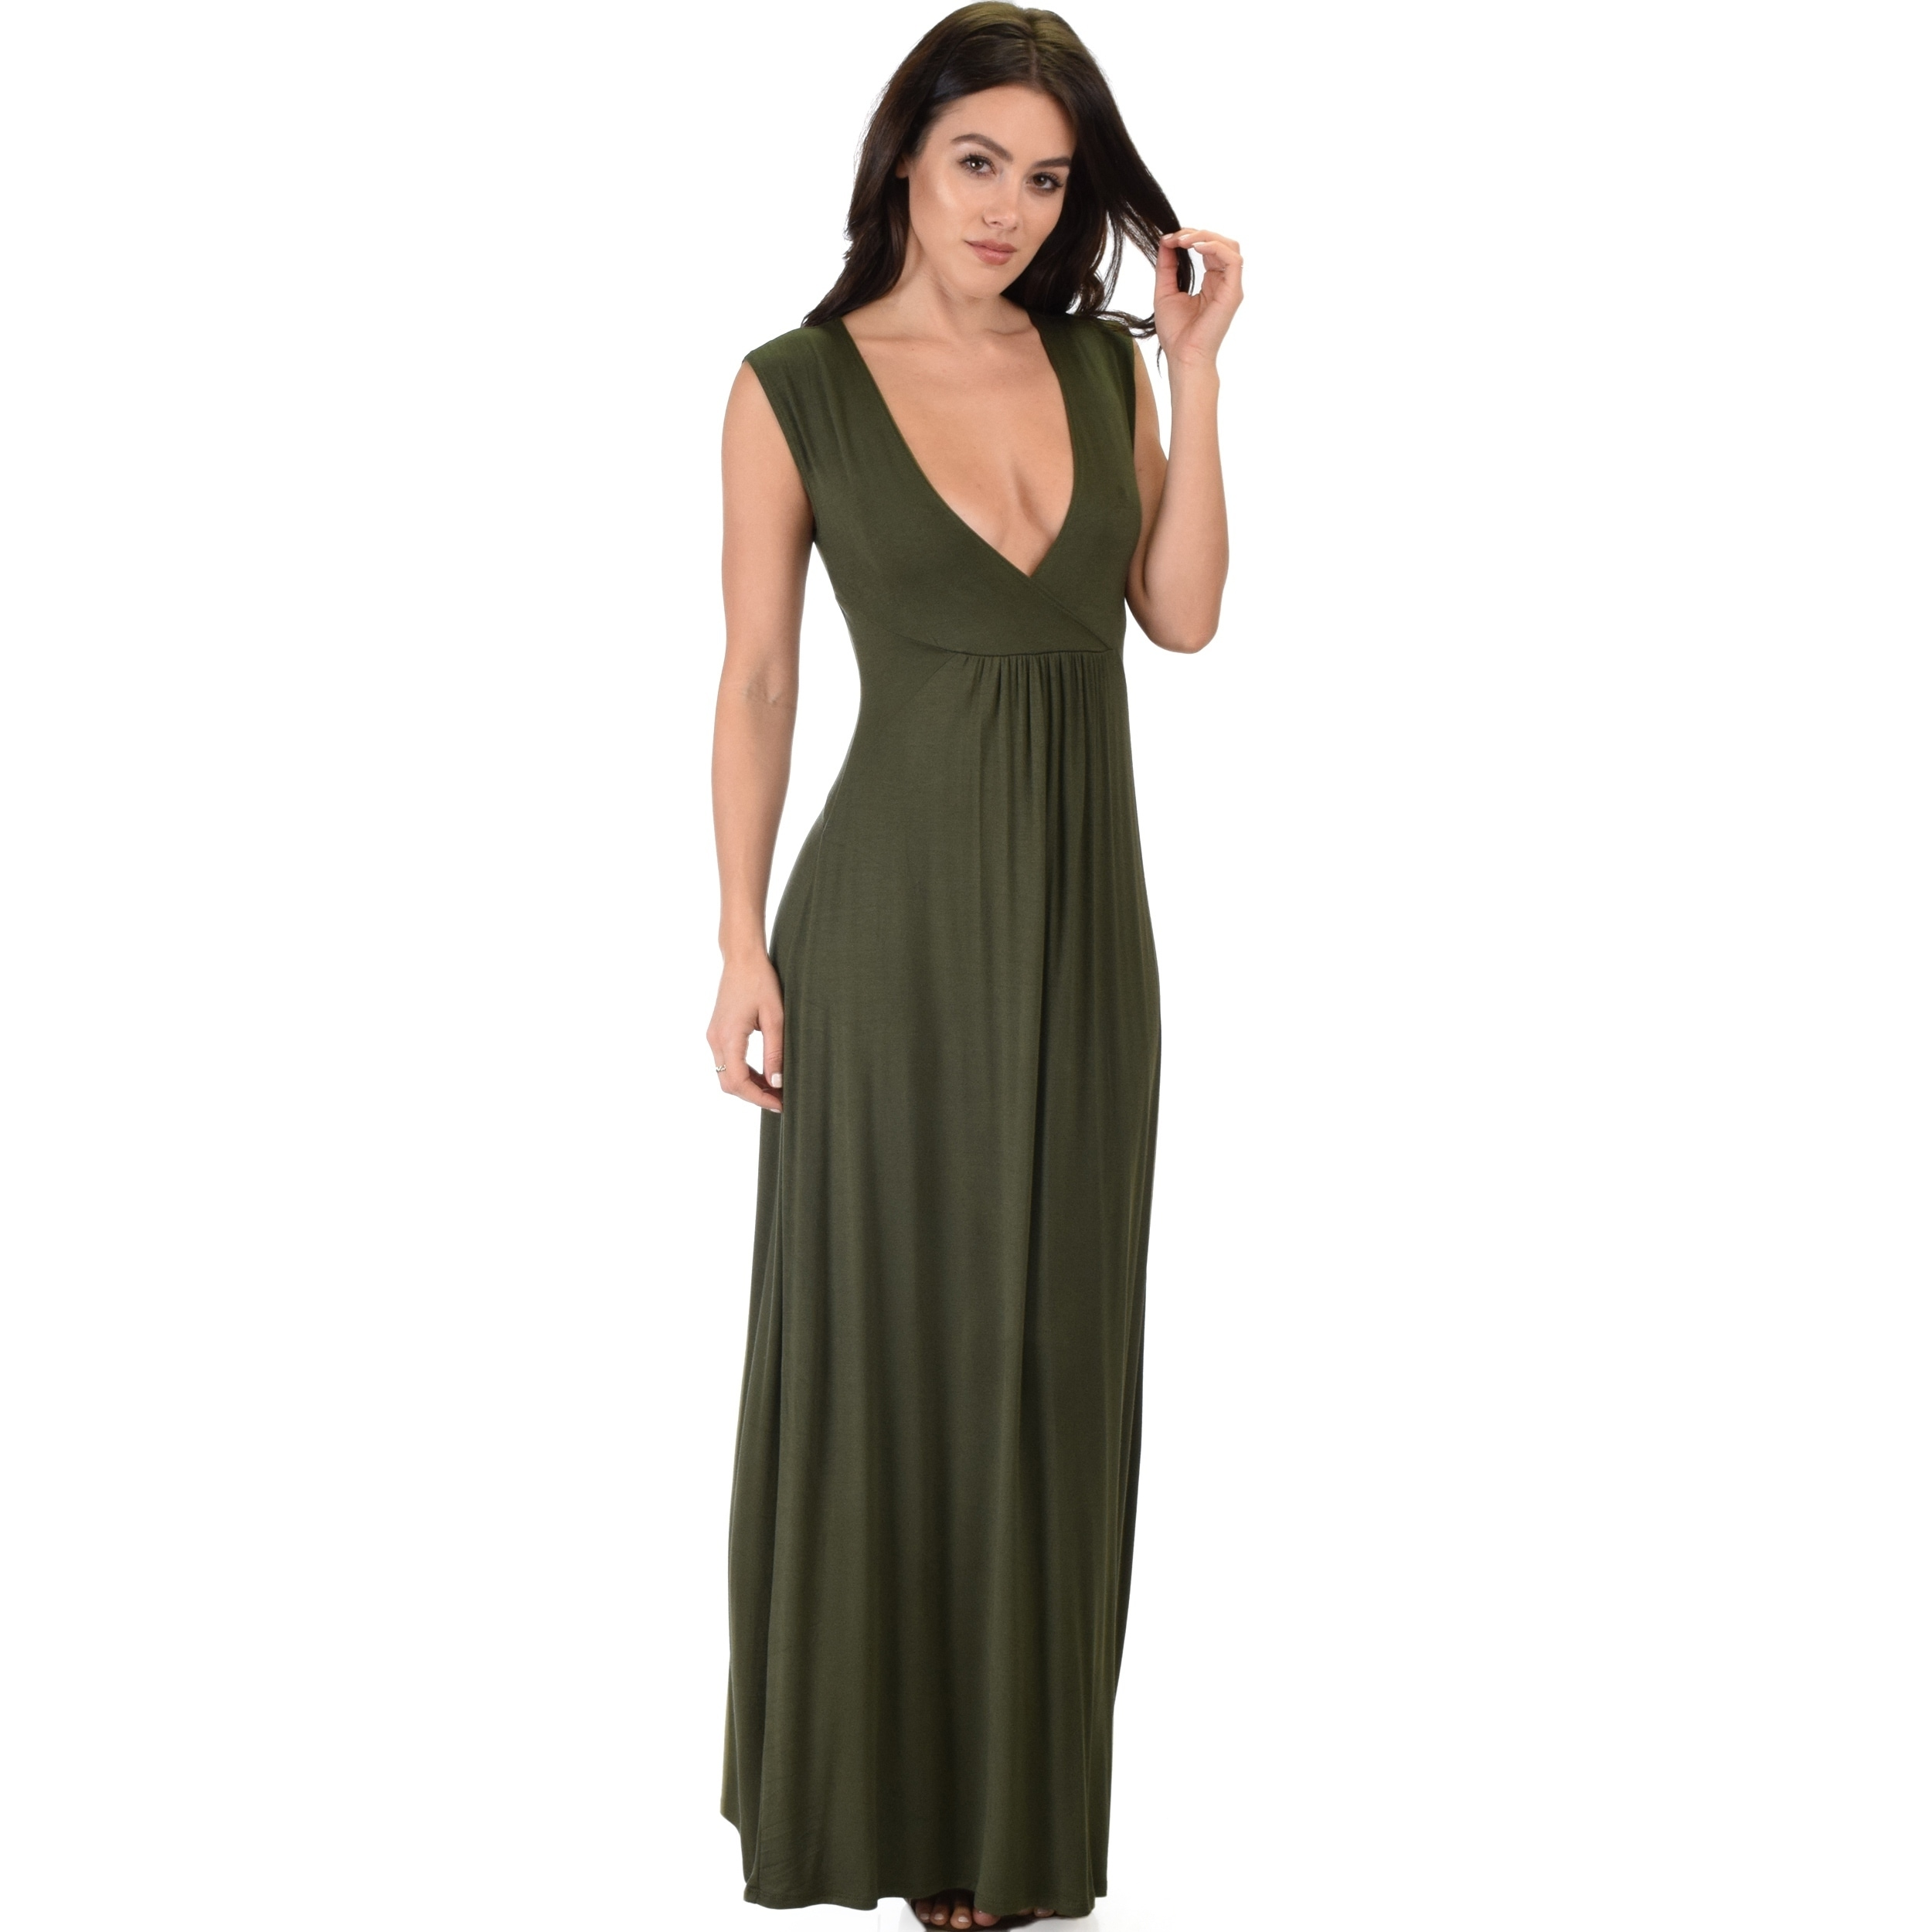 5a38ccf3e1e Shop Lyss Loo Sweetest Kiss Sleeveless Maxi Dress - Free Shipping On Orders  Over  45 - Overstock - 17613730